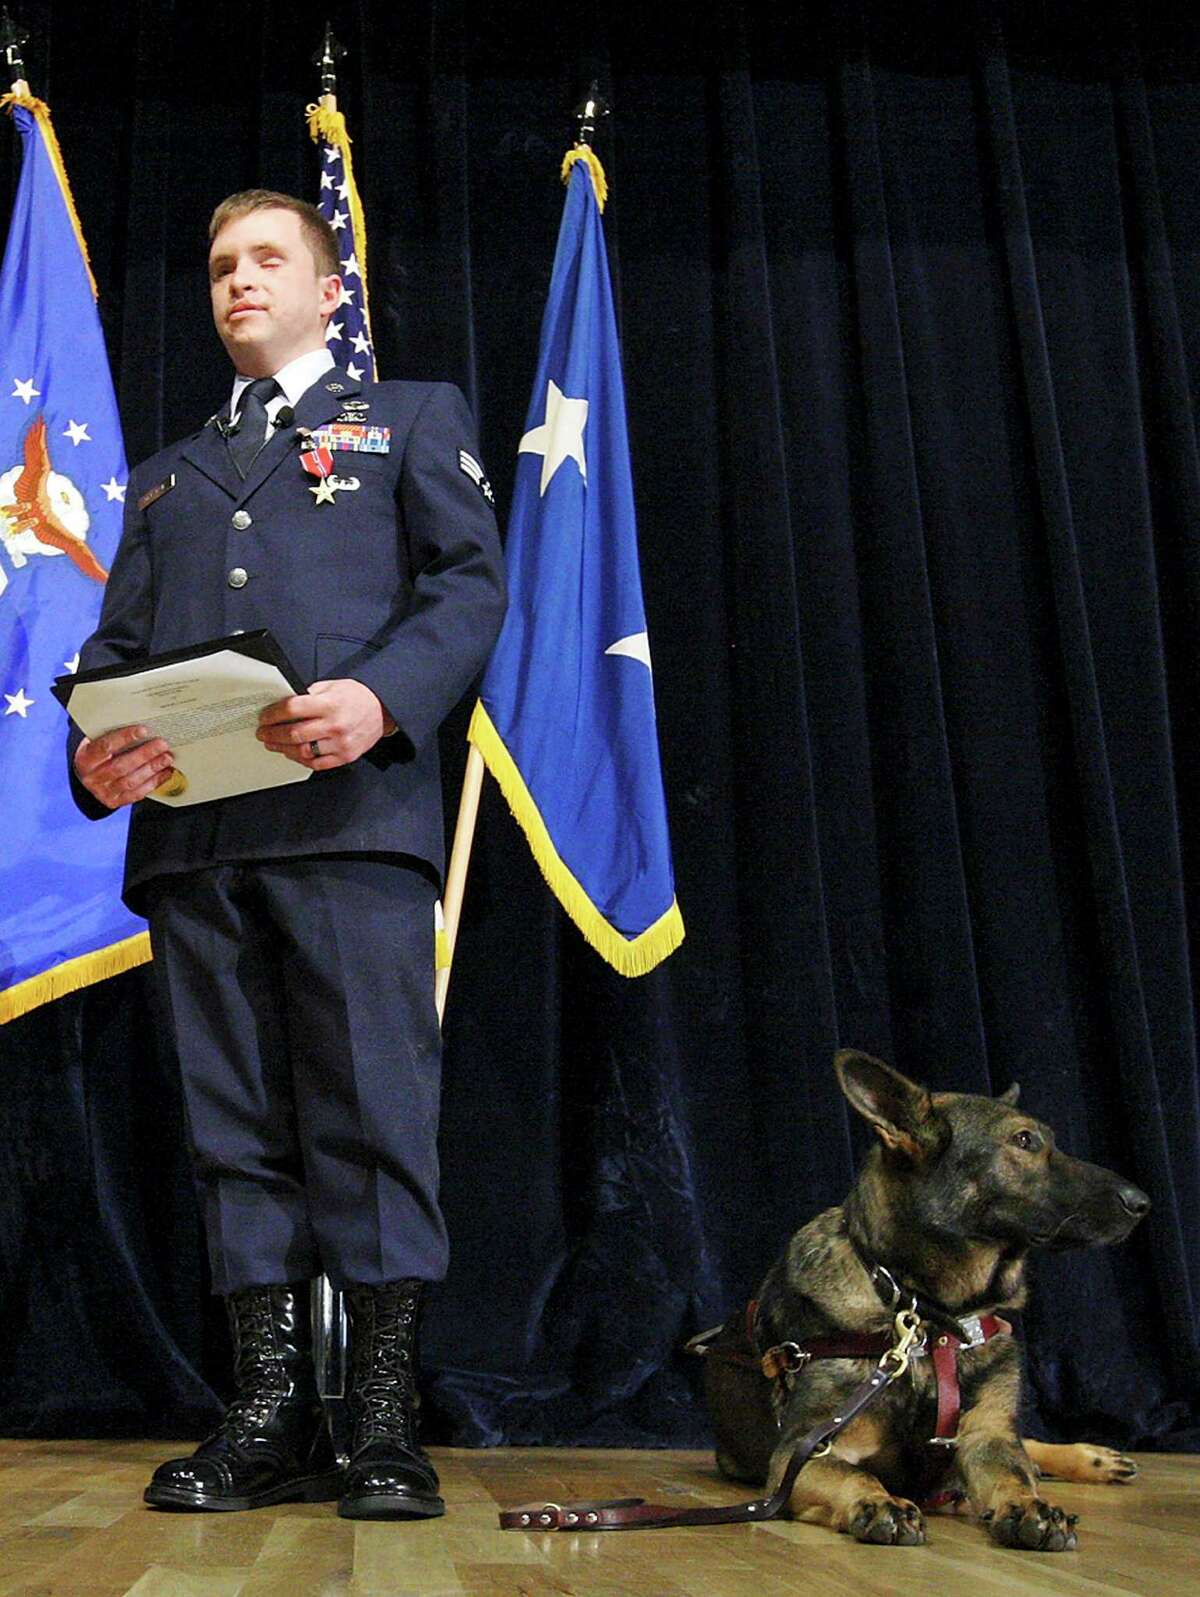 Maj. Gen. Byron Hepburn, commander of the 59th Medical Wing, Director San Antonio Military Health System, (from left) applauds after awarding Senior Airman Michael Malarsie, a former Air Force Joint Attack Controller, the Bronze Star with